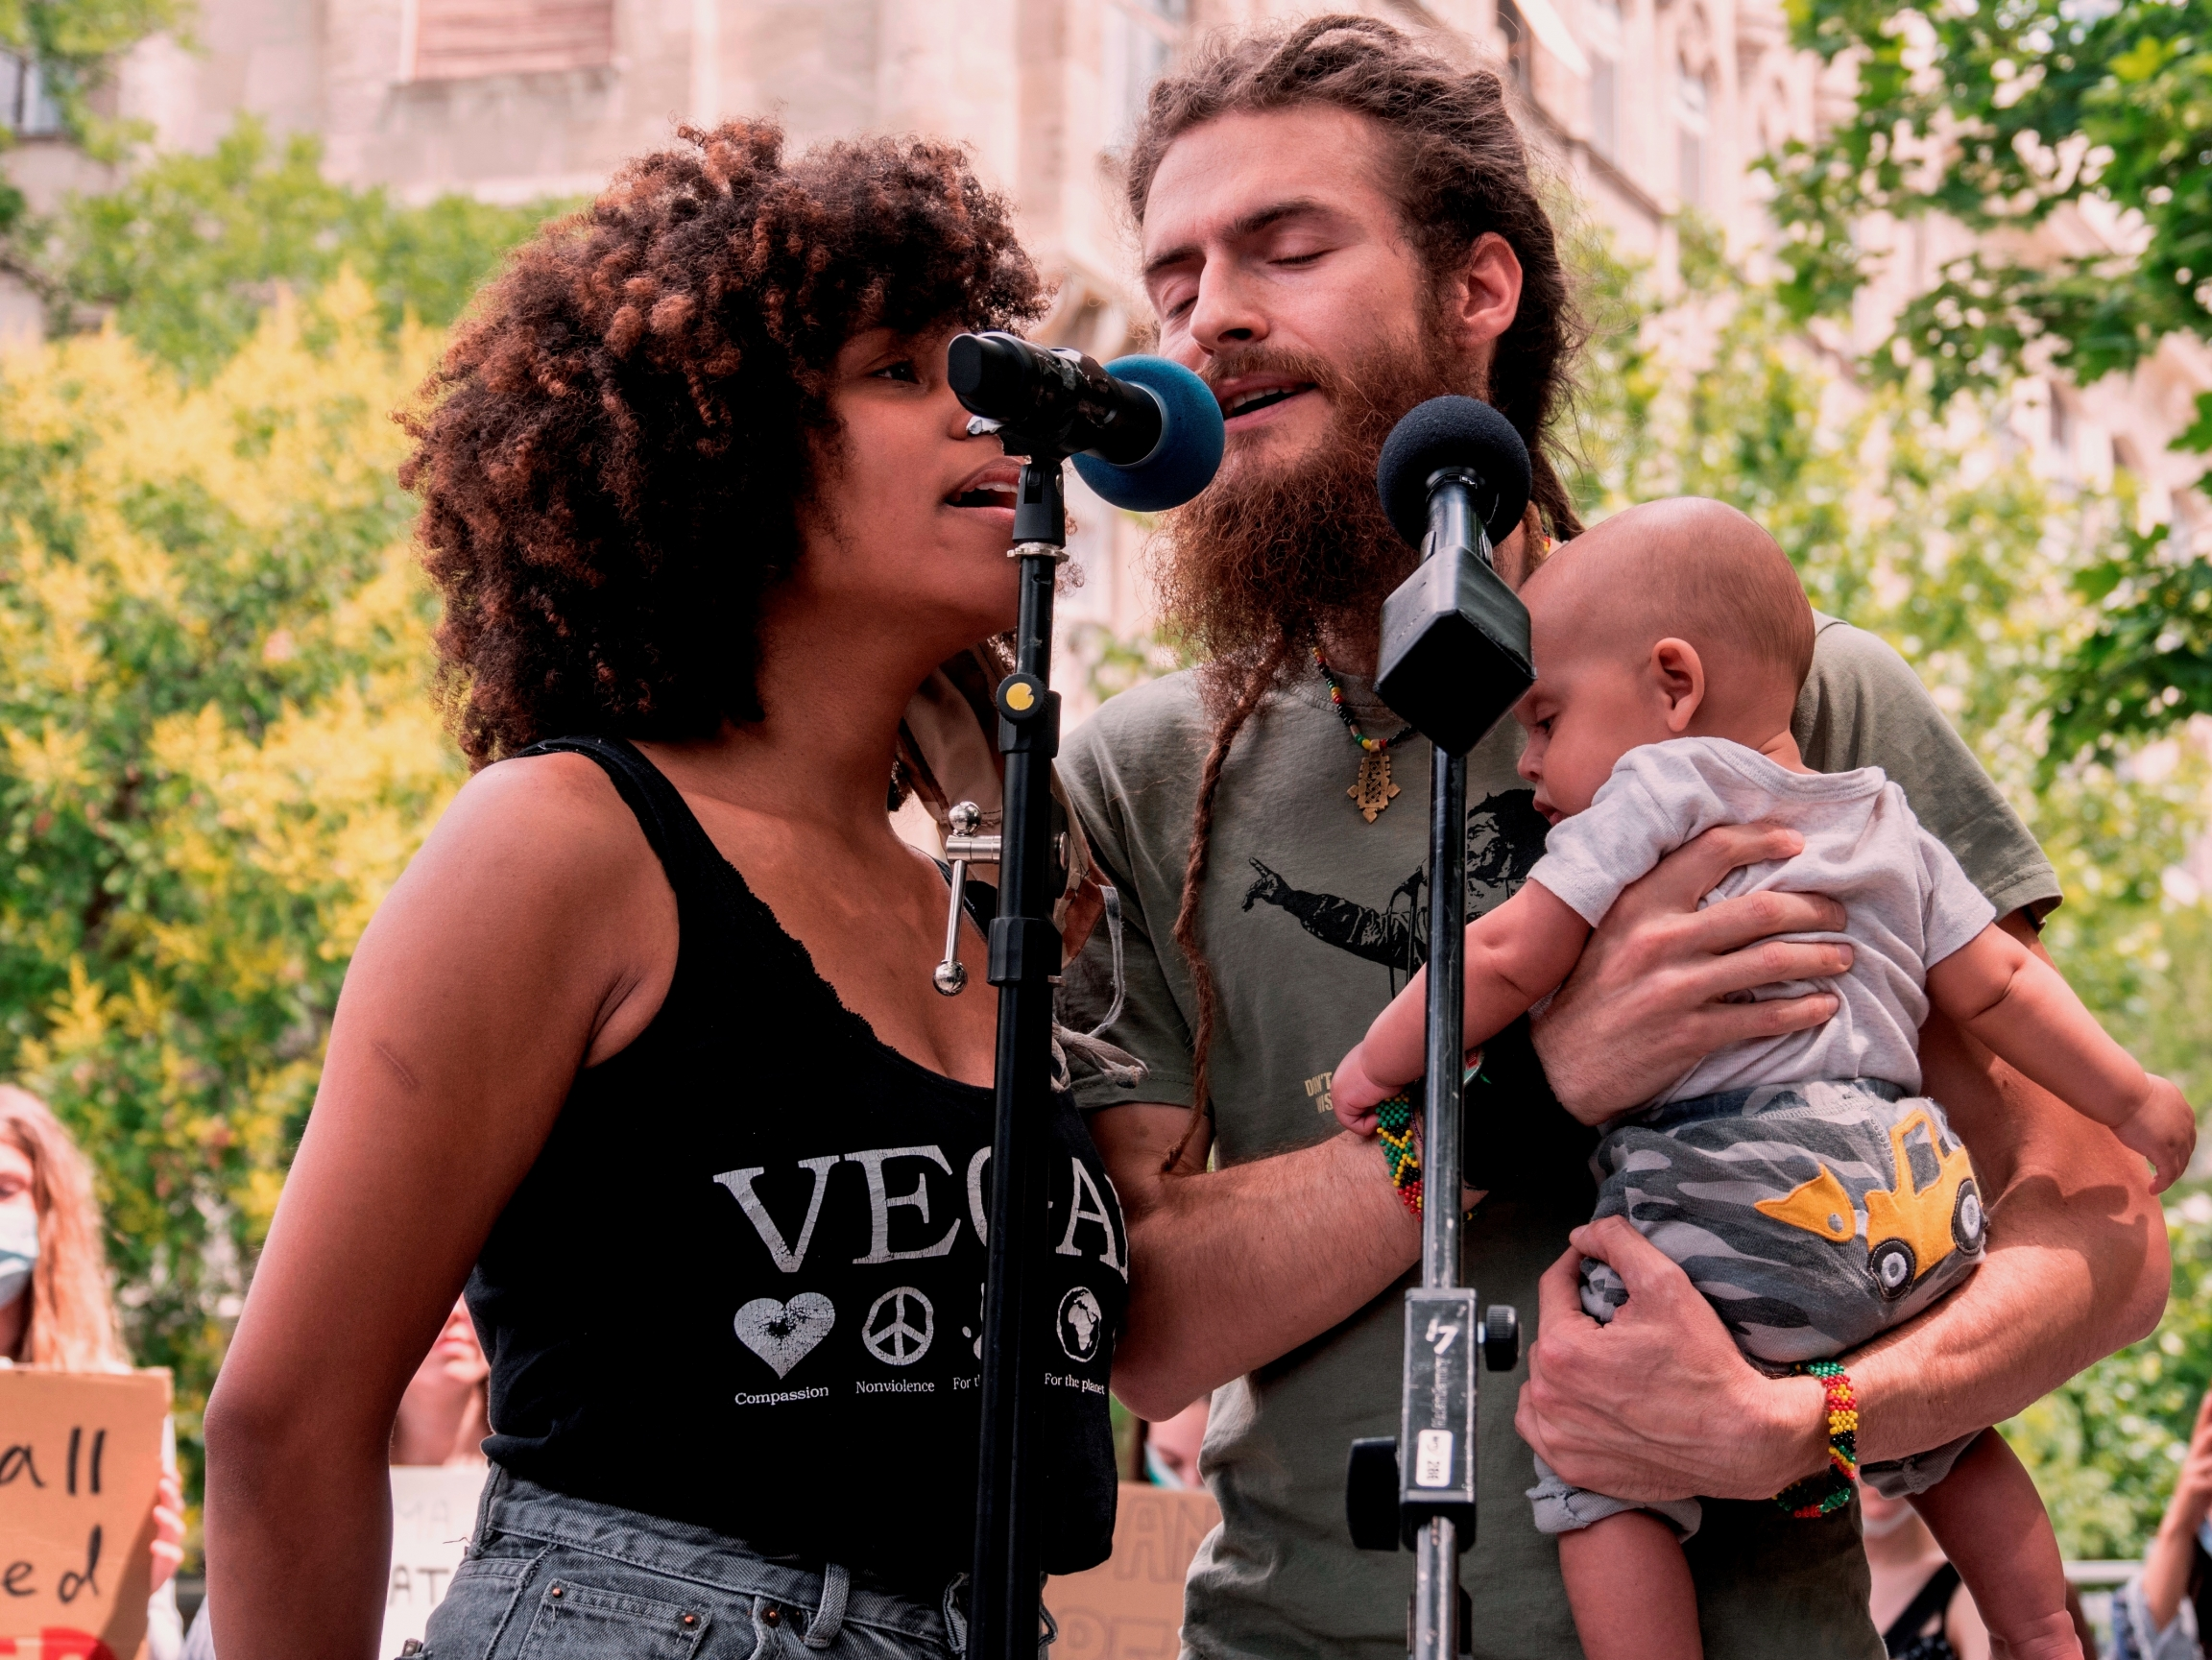 Gregory G Ras,a reggae singer and activist,organized the main Black Lives Mattermarch in Budapest last summer. His wife and baby Noah are pictured with him.